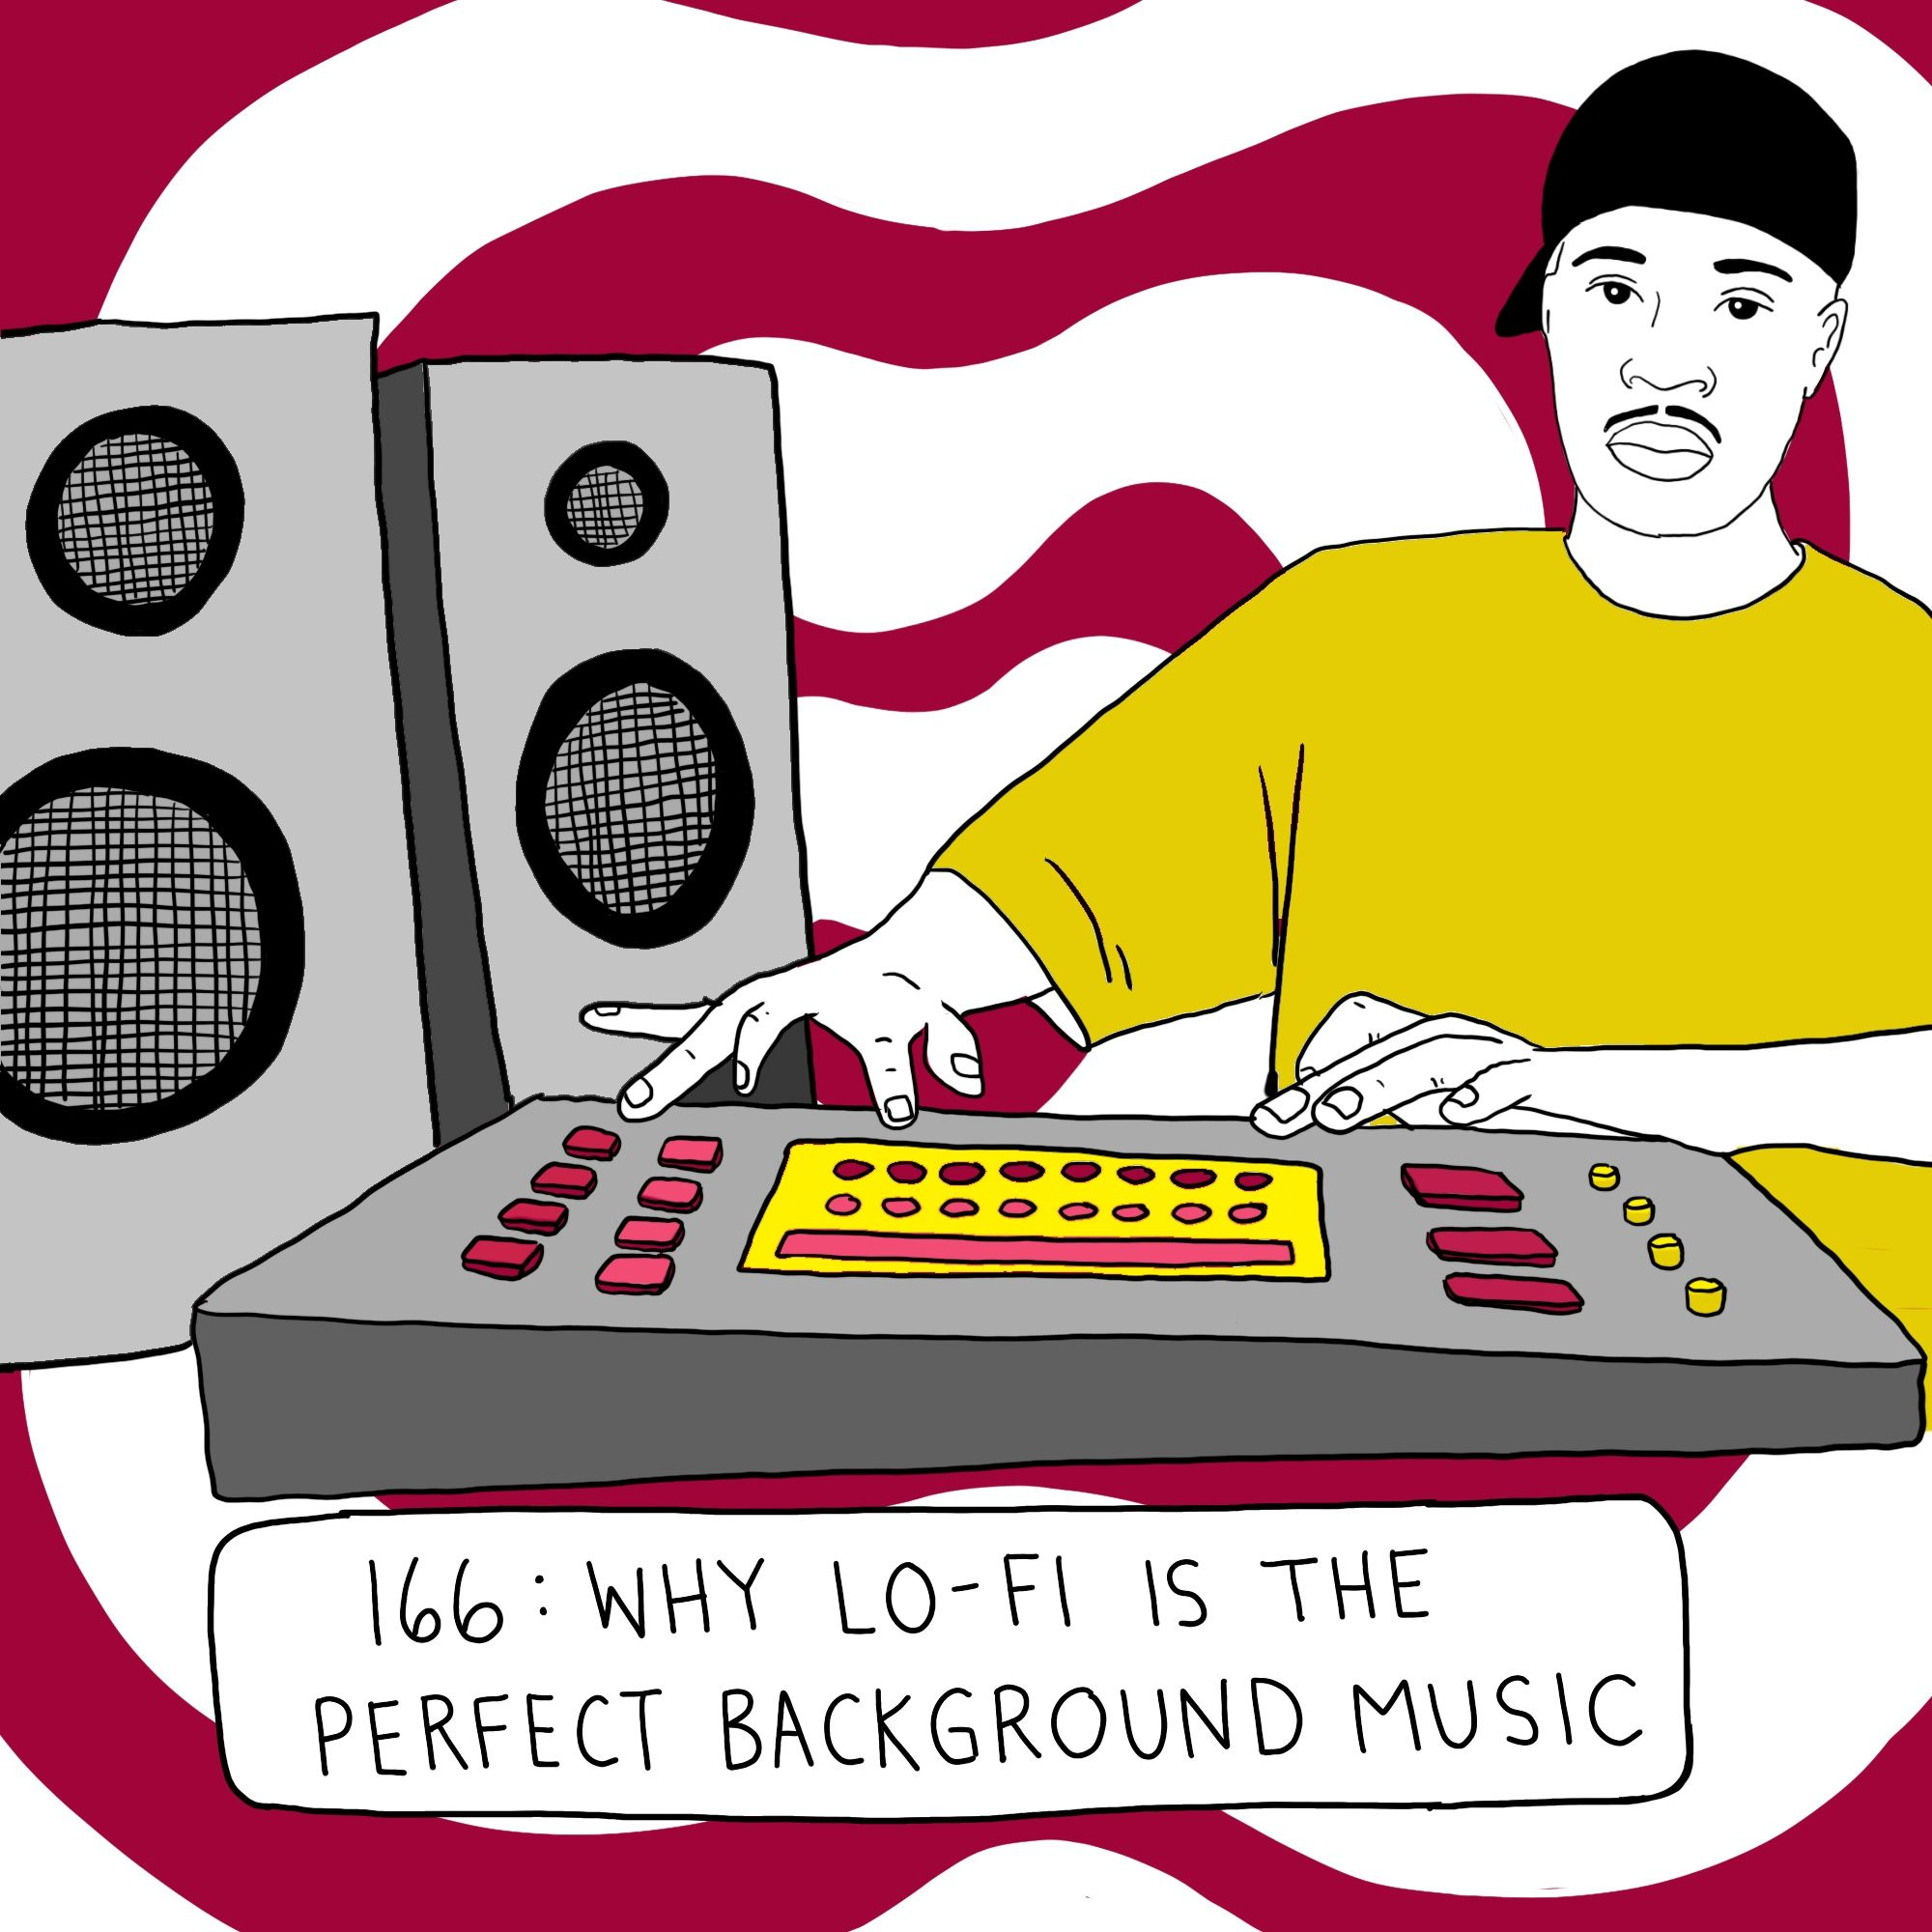 Why lo-fi is the perfect background music